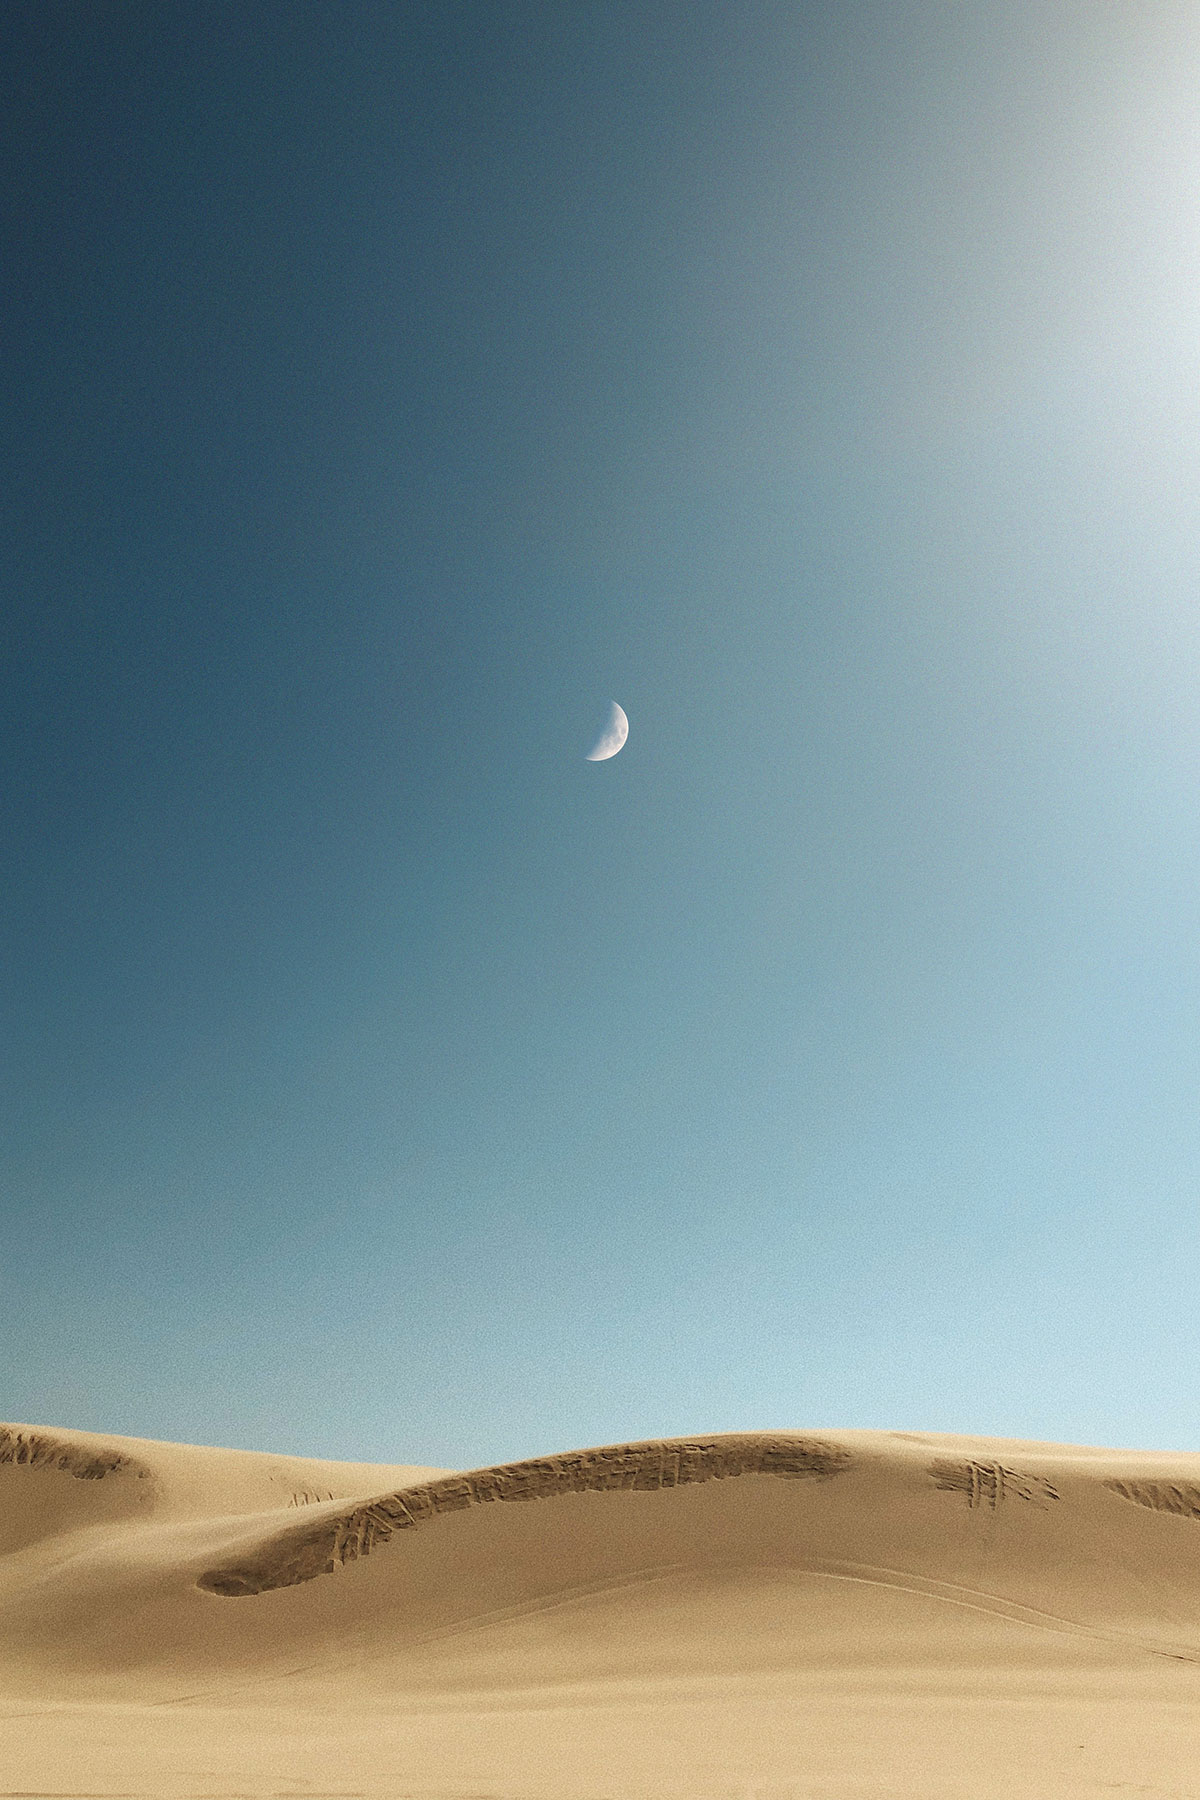 Moon over desert